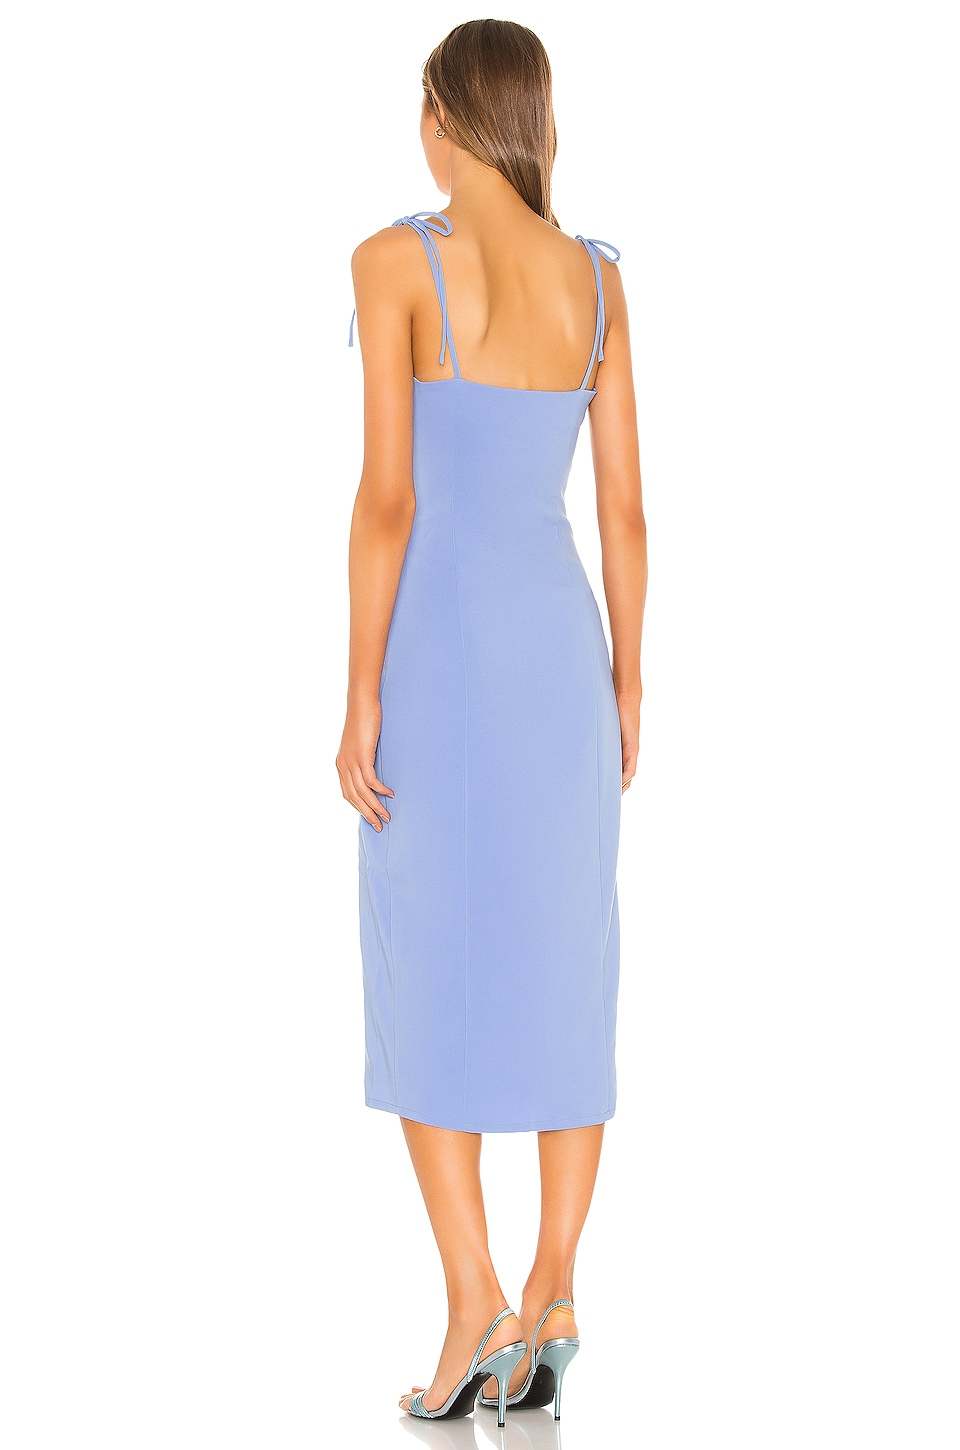 Aaliyah Midi Dress, view 3, click to view large image.